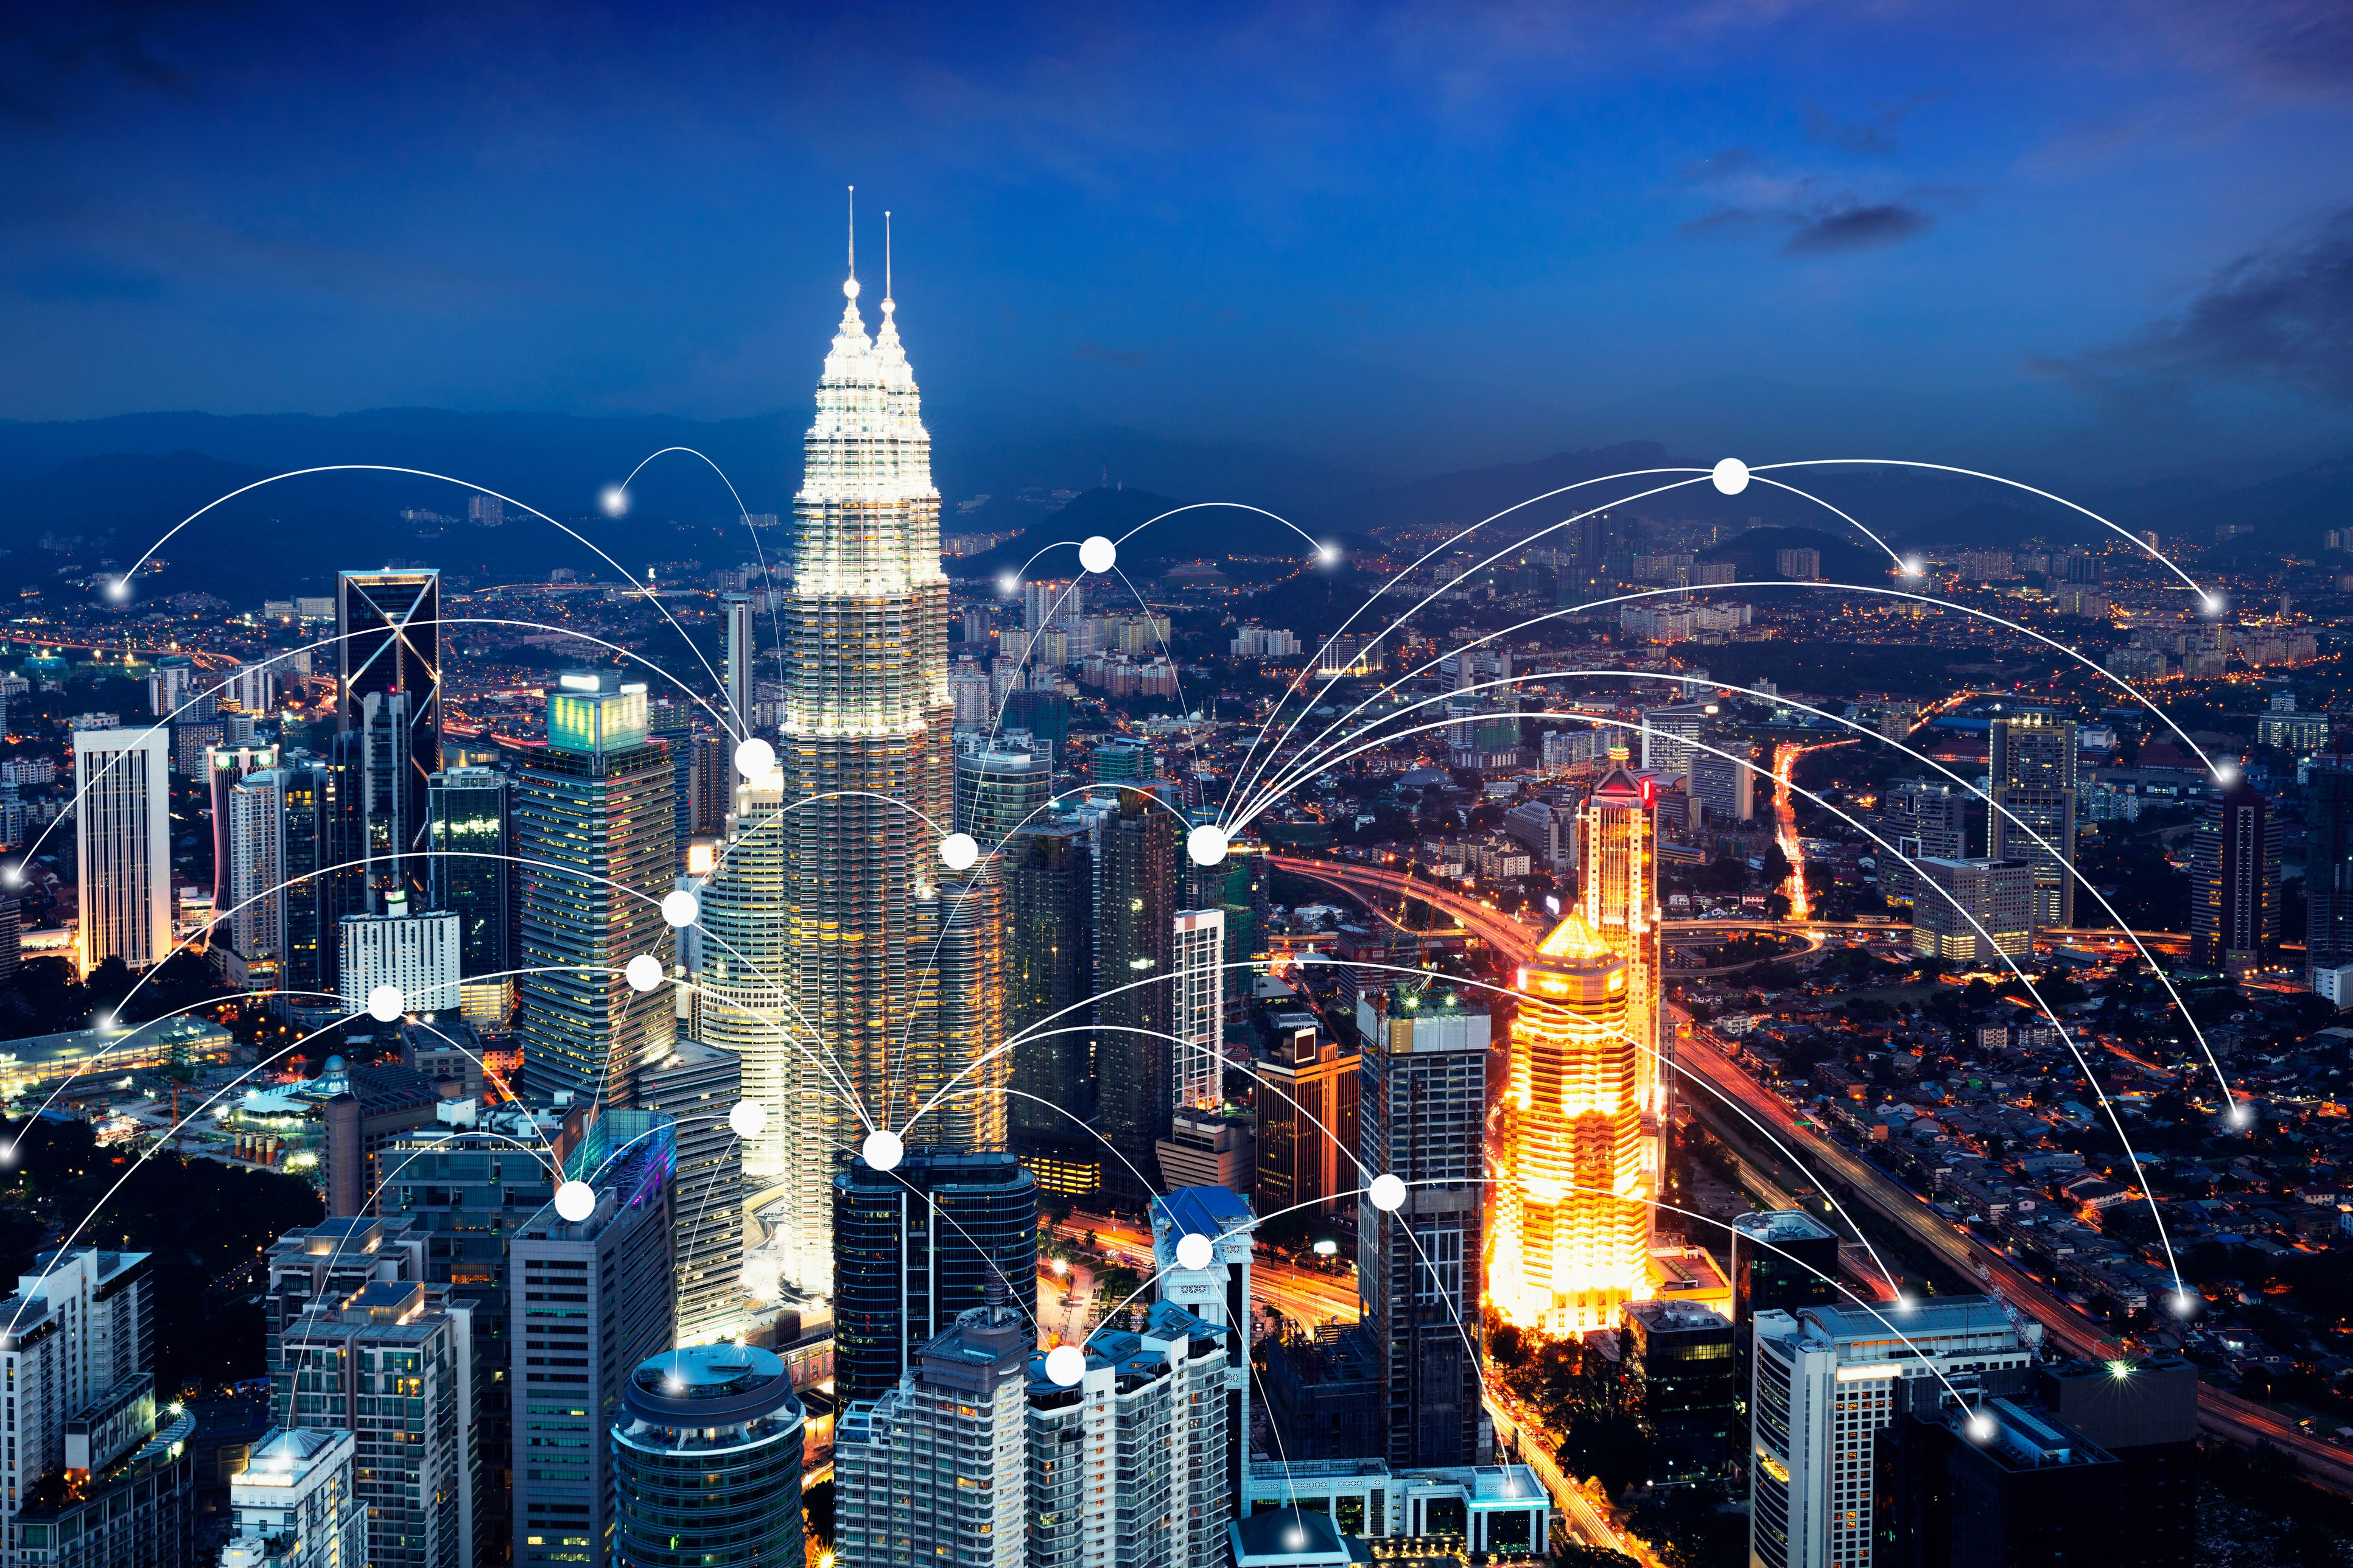 Wifi icon and city scape network connection concept, Smart city